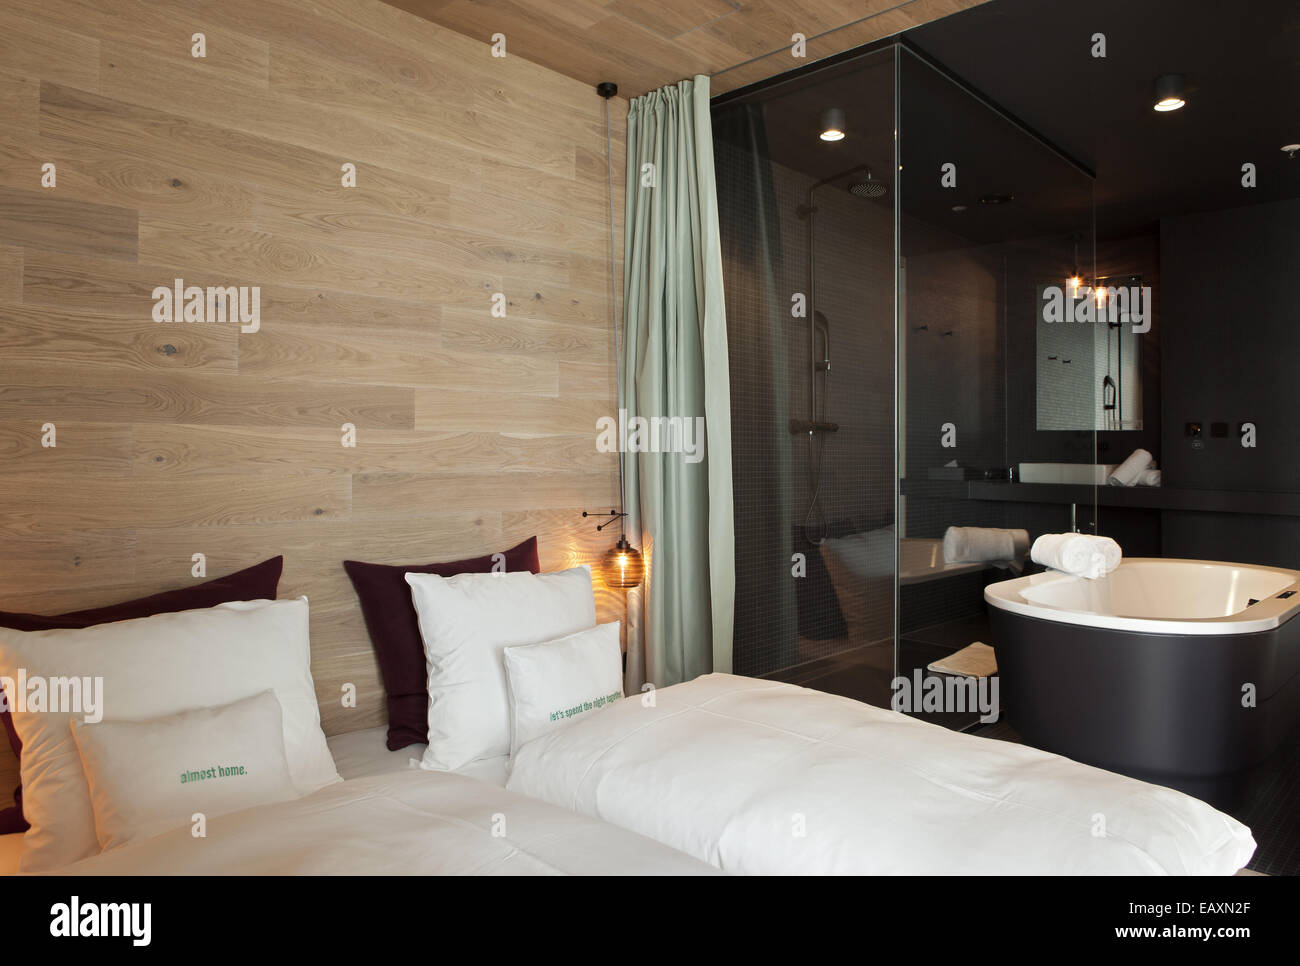 25hours hotel stock photos 25hours hotel stock images alamy. Black Bedroom Furniture Sets. Home Design Ideas